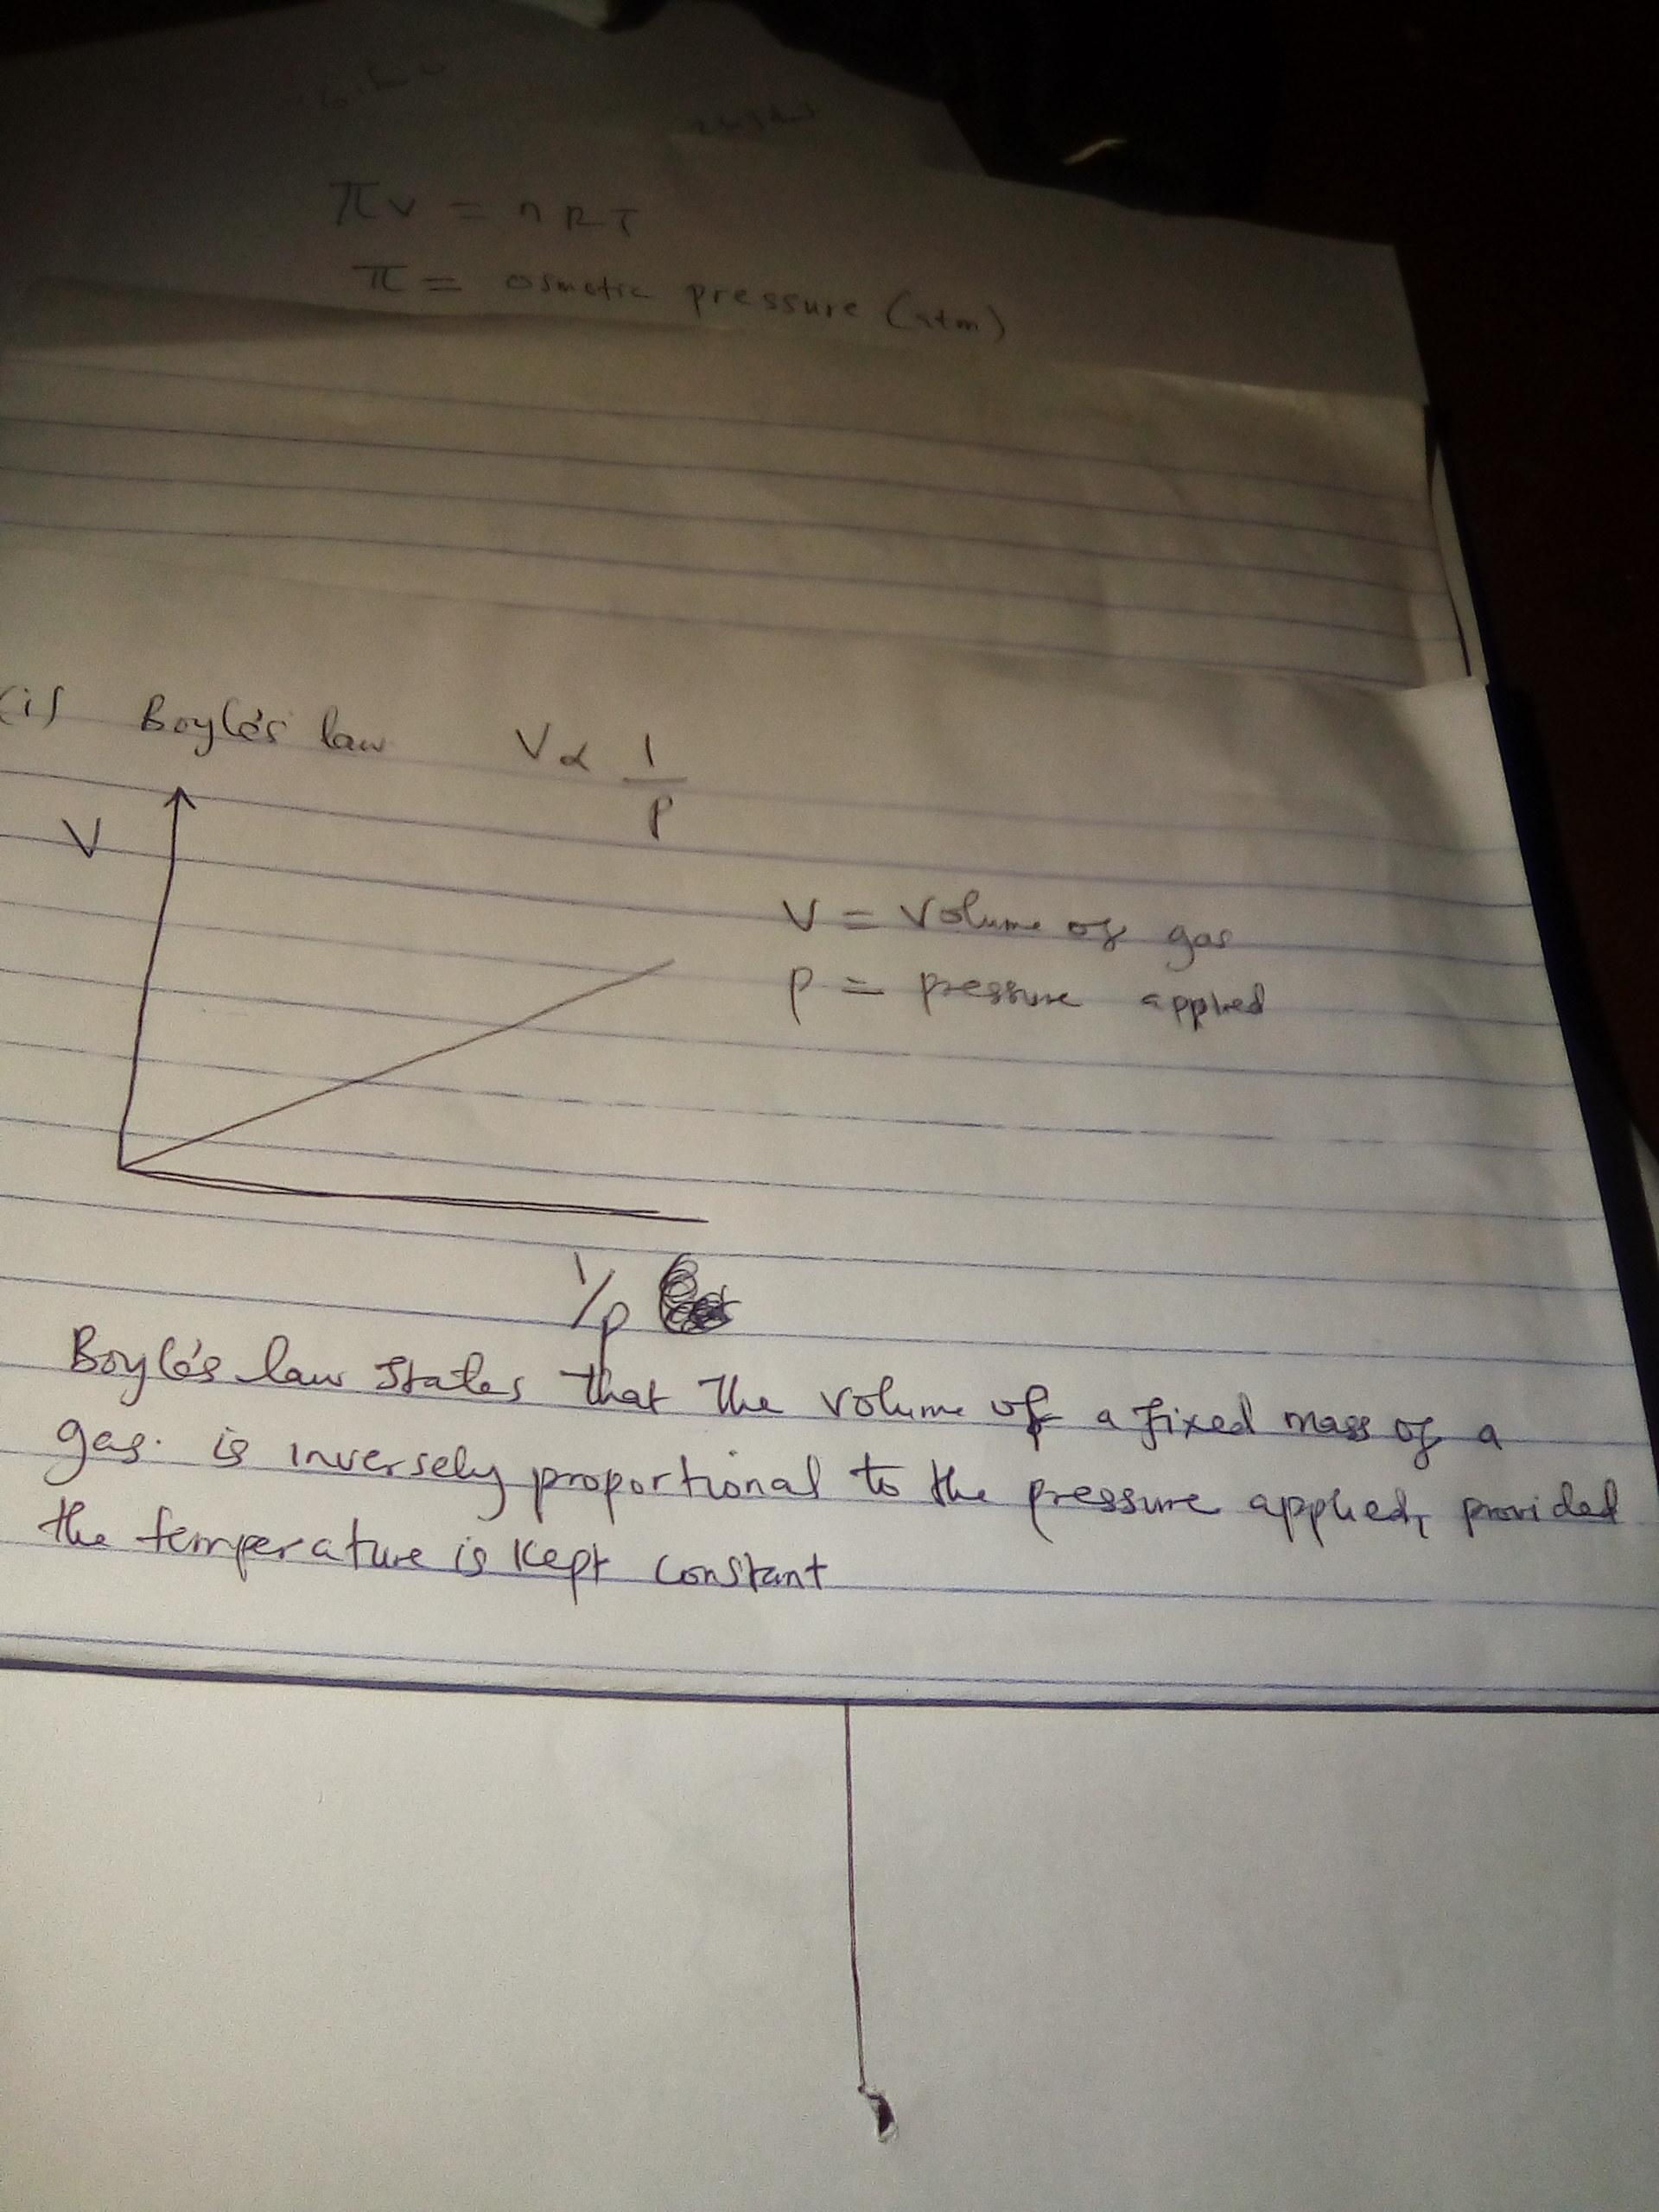 Draw Graphs Representing Boyle S Law Charles S Law And